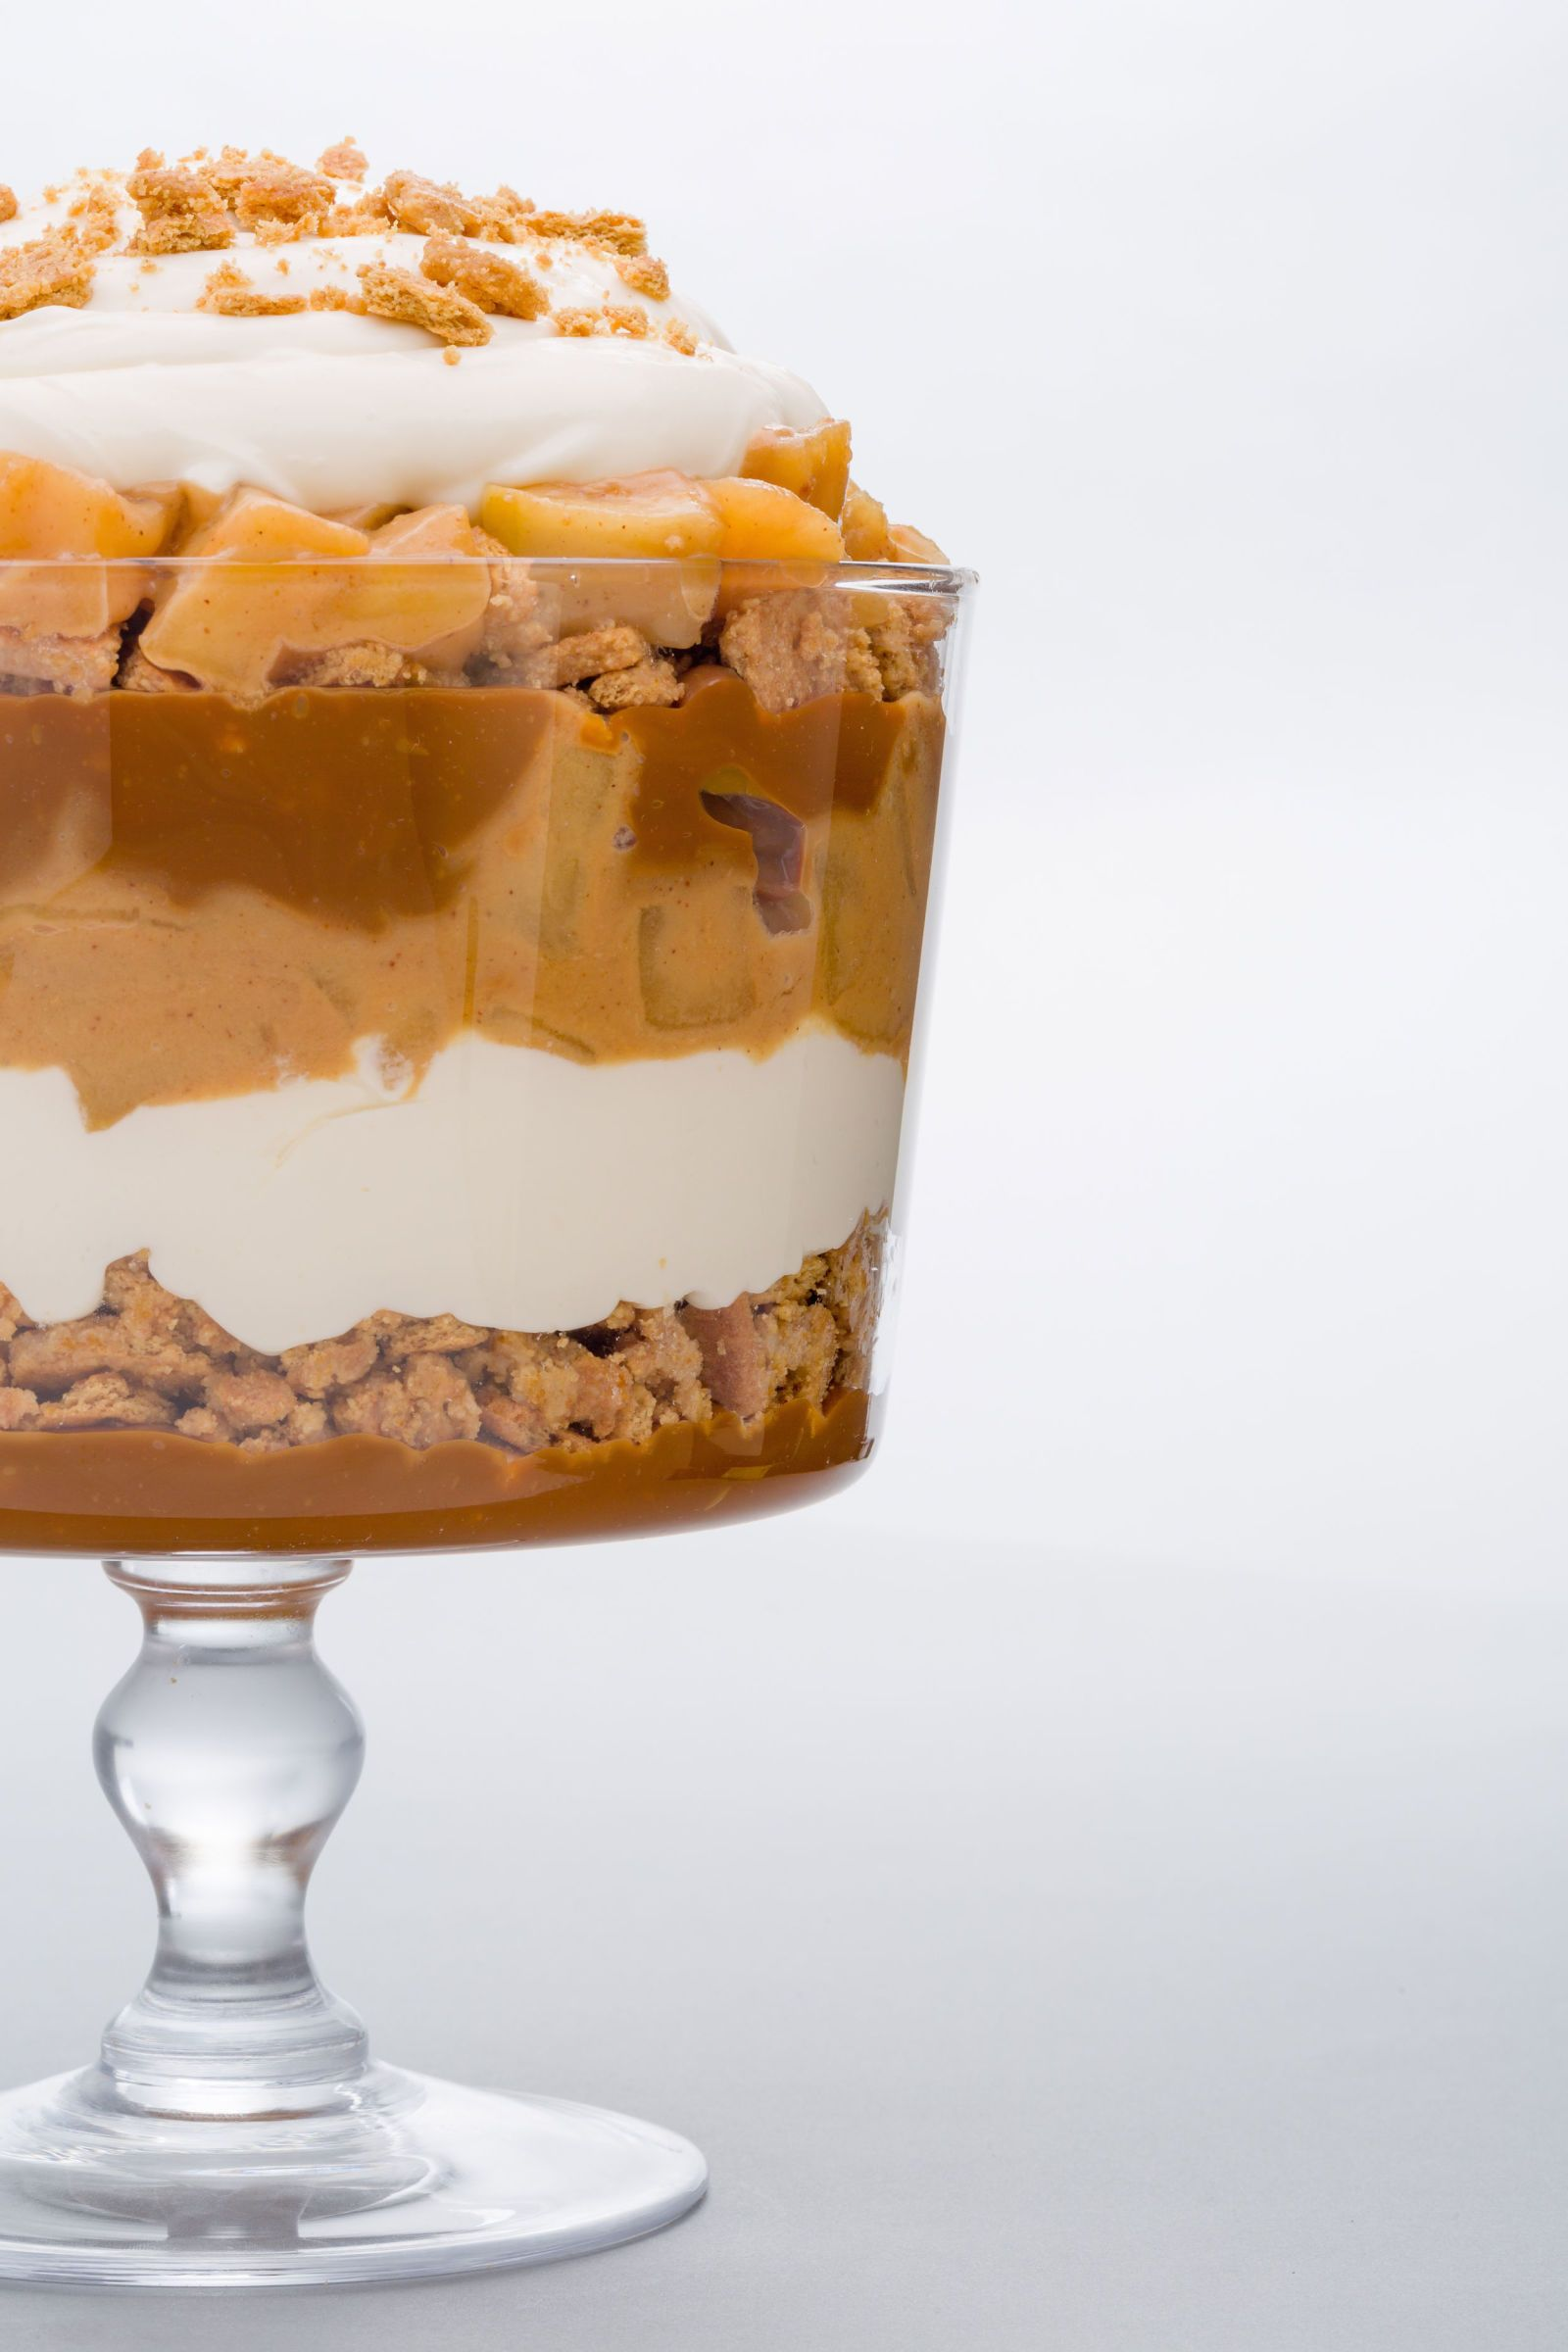 This Gingerbread Trifle Is E-V-E-R-Y-T-H-I-N-G Your Holiday Table Needs